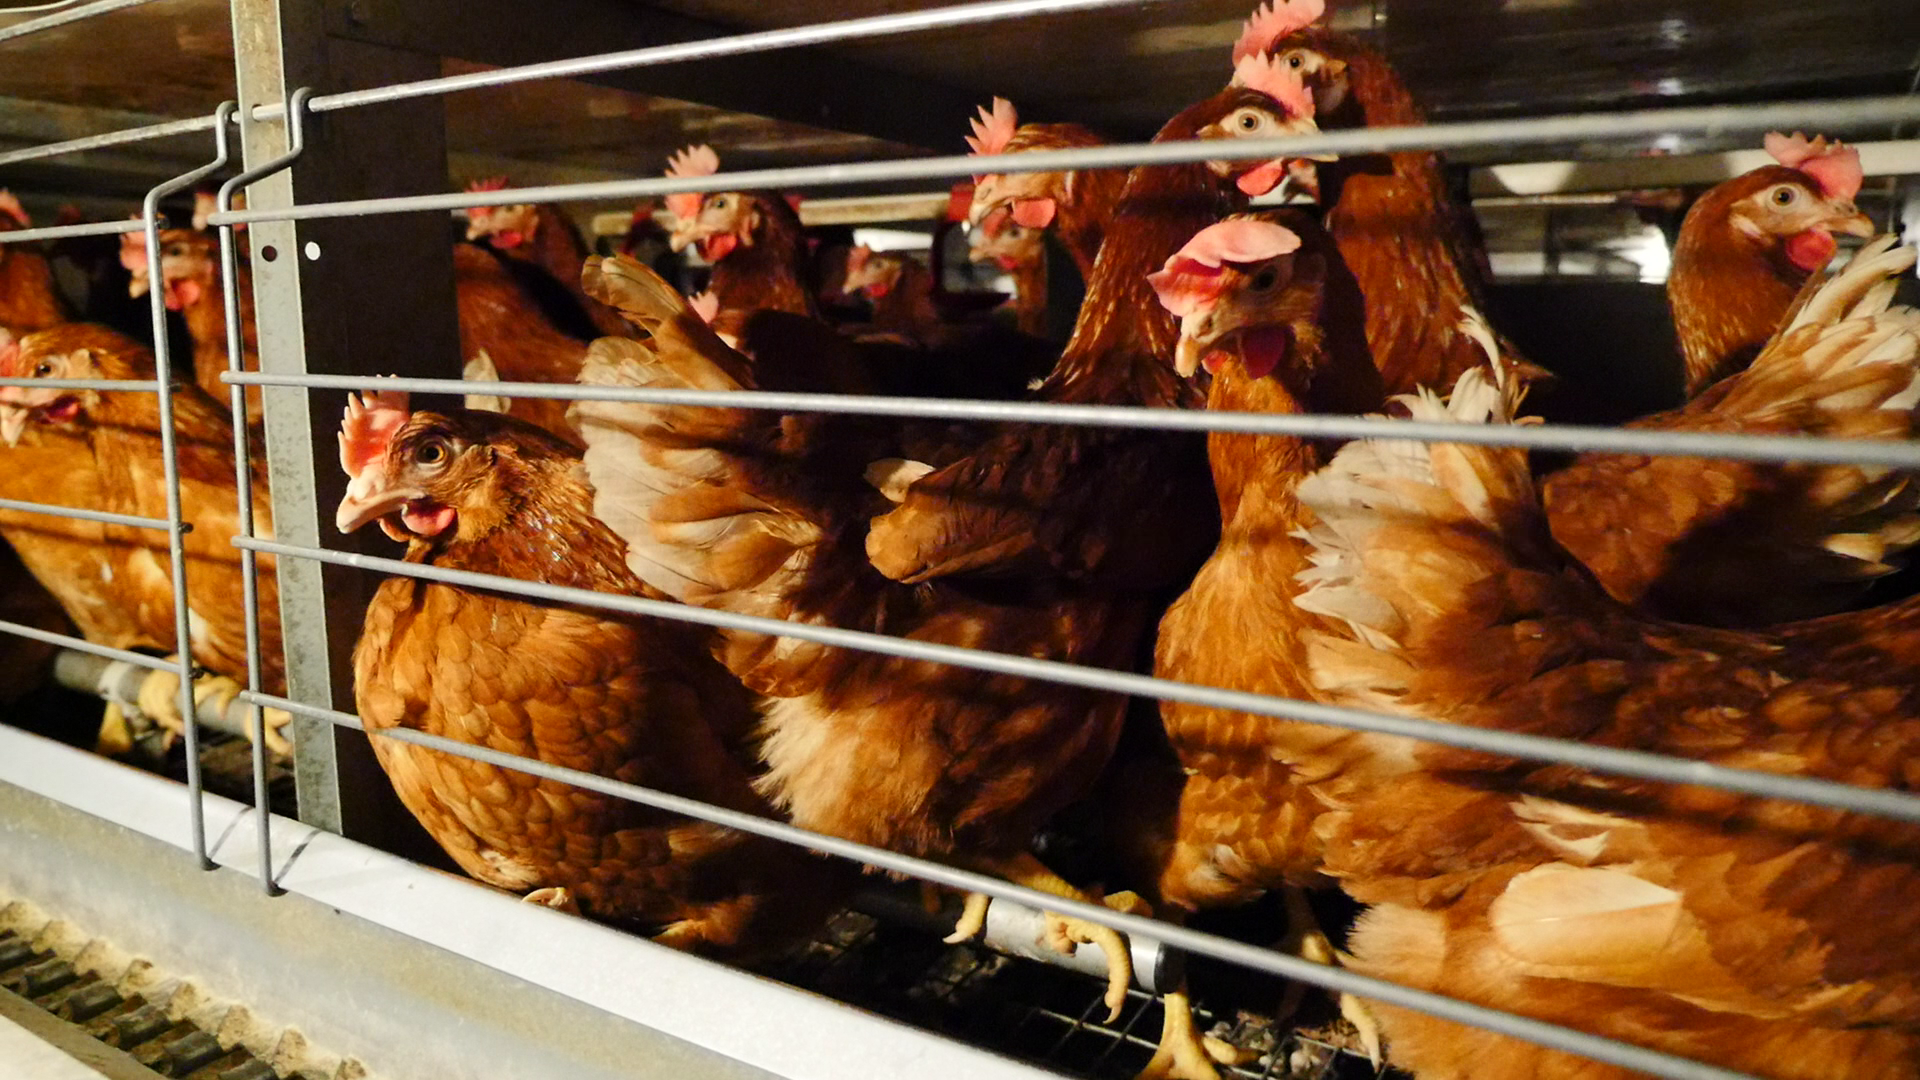 Hens in cages